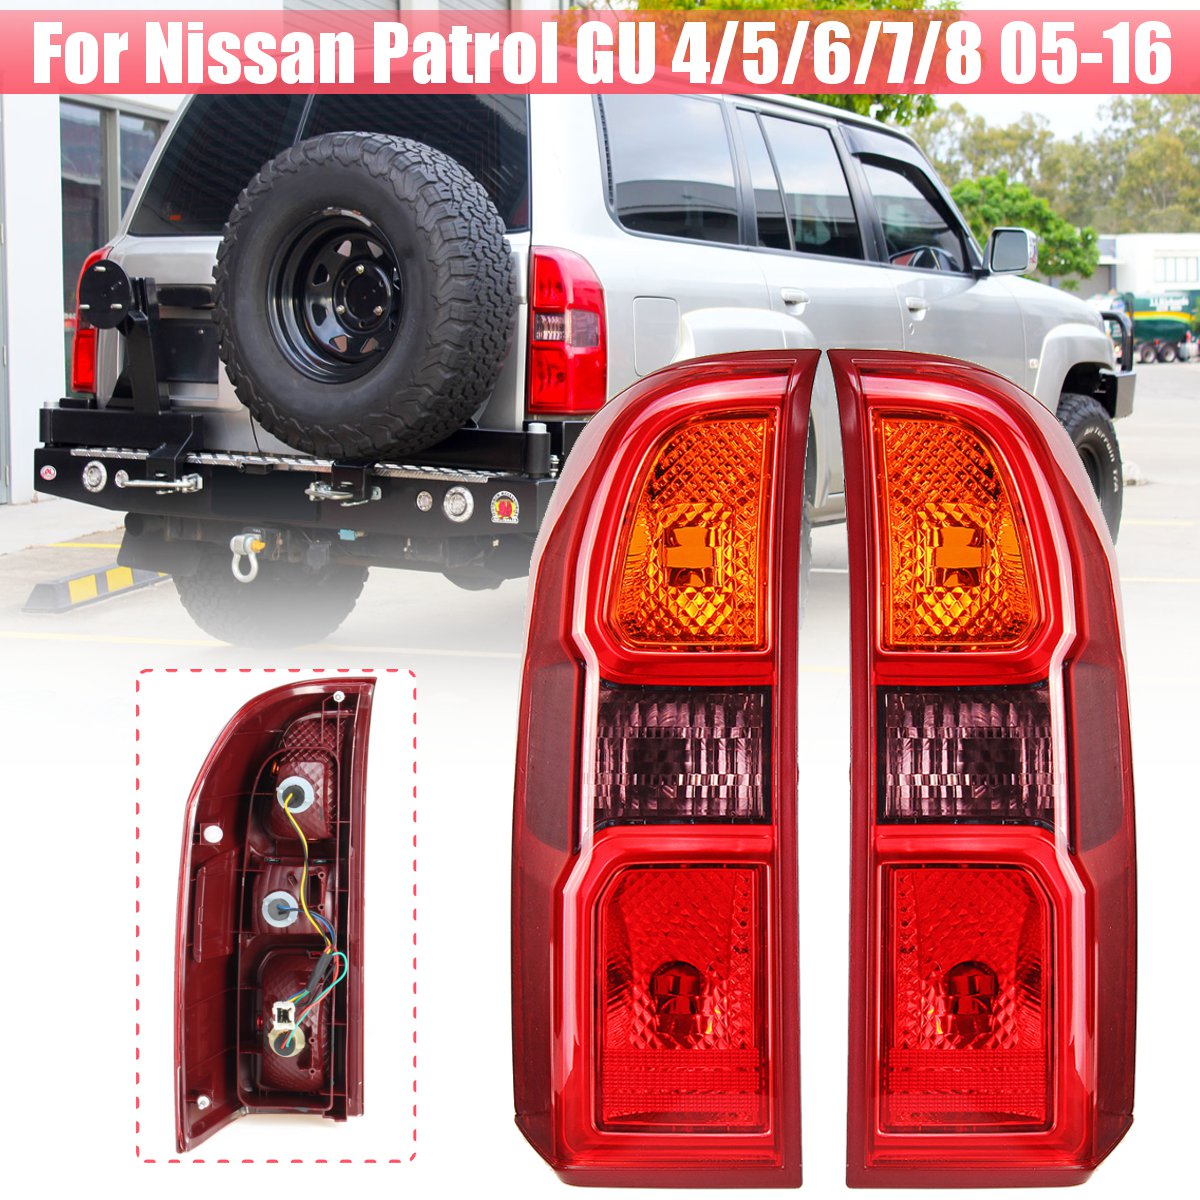 Rear Tail Light Brake Lamp Tail Light Lamp For Nissan Patrol GU 4/5/6/7/8 2005 2006 2007 2008 2009 2010 2011 2012-2016Rear Tail Light Brake Lamp Tail Light Lamp For Nissan Patrol GU 4/5/6/7/8 2005 2006 2007 2008 2009 2010 2011 2012-2016